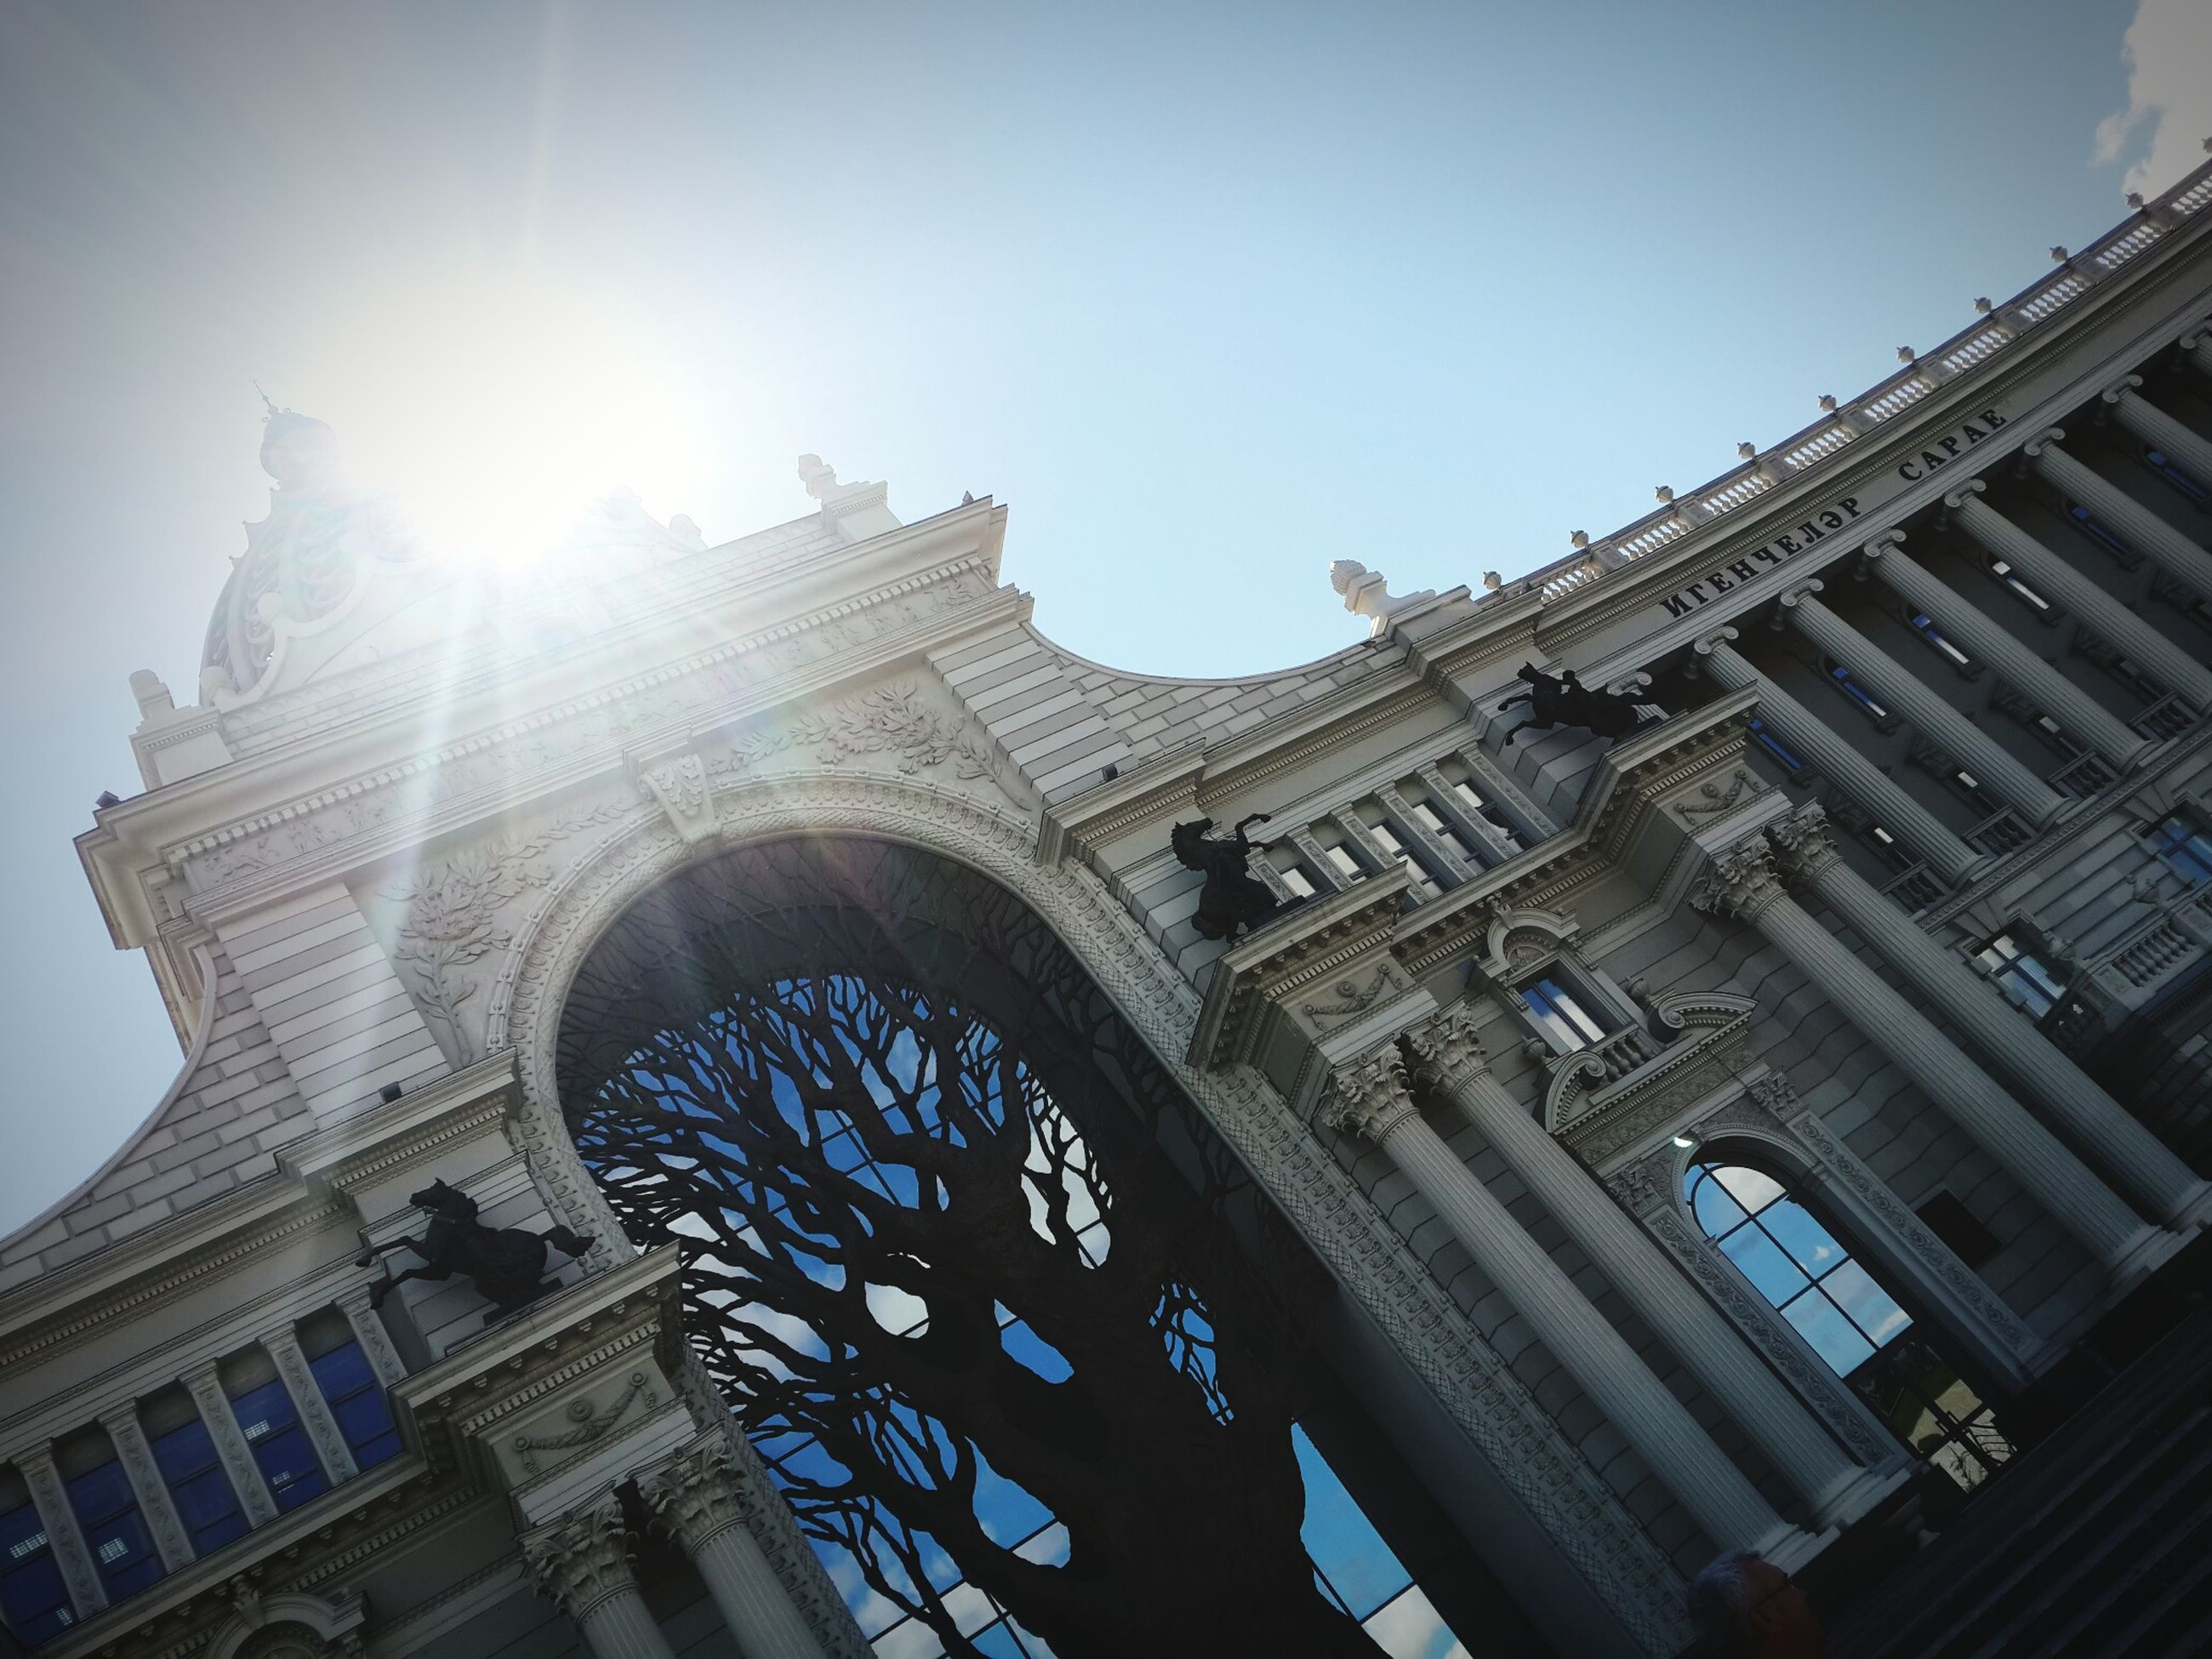 architecture, built structure, building exterior, low angle view, sun, sunbeam, sunlight, clear sky, city, lens flare, sky, tower, travel destinations, famous place, tall - high, sunny, building, day, capital cities, outdoors